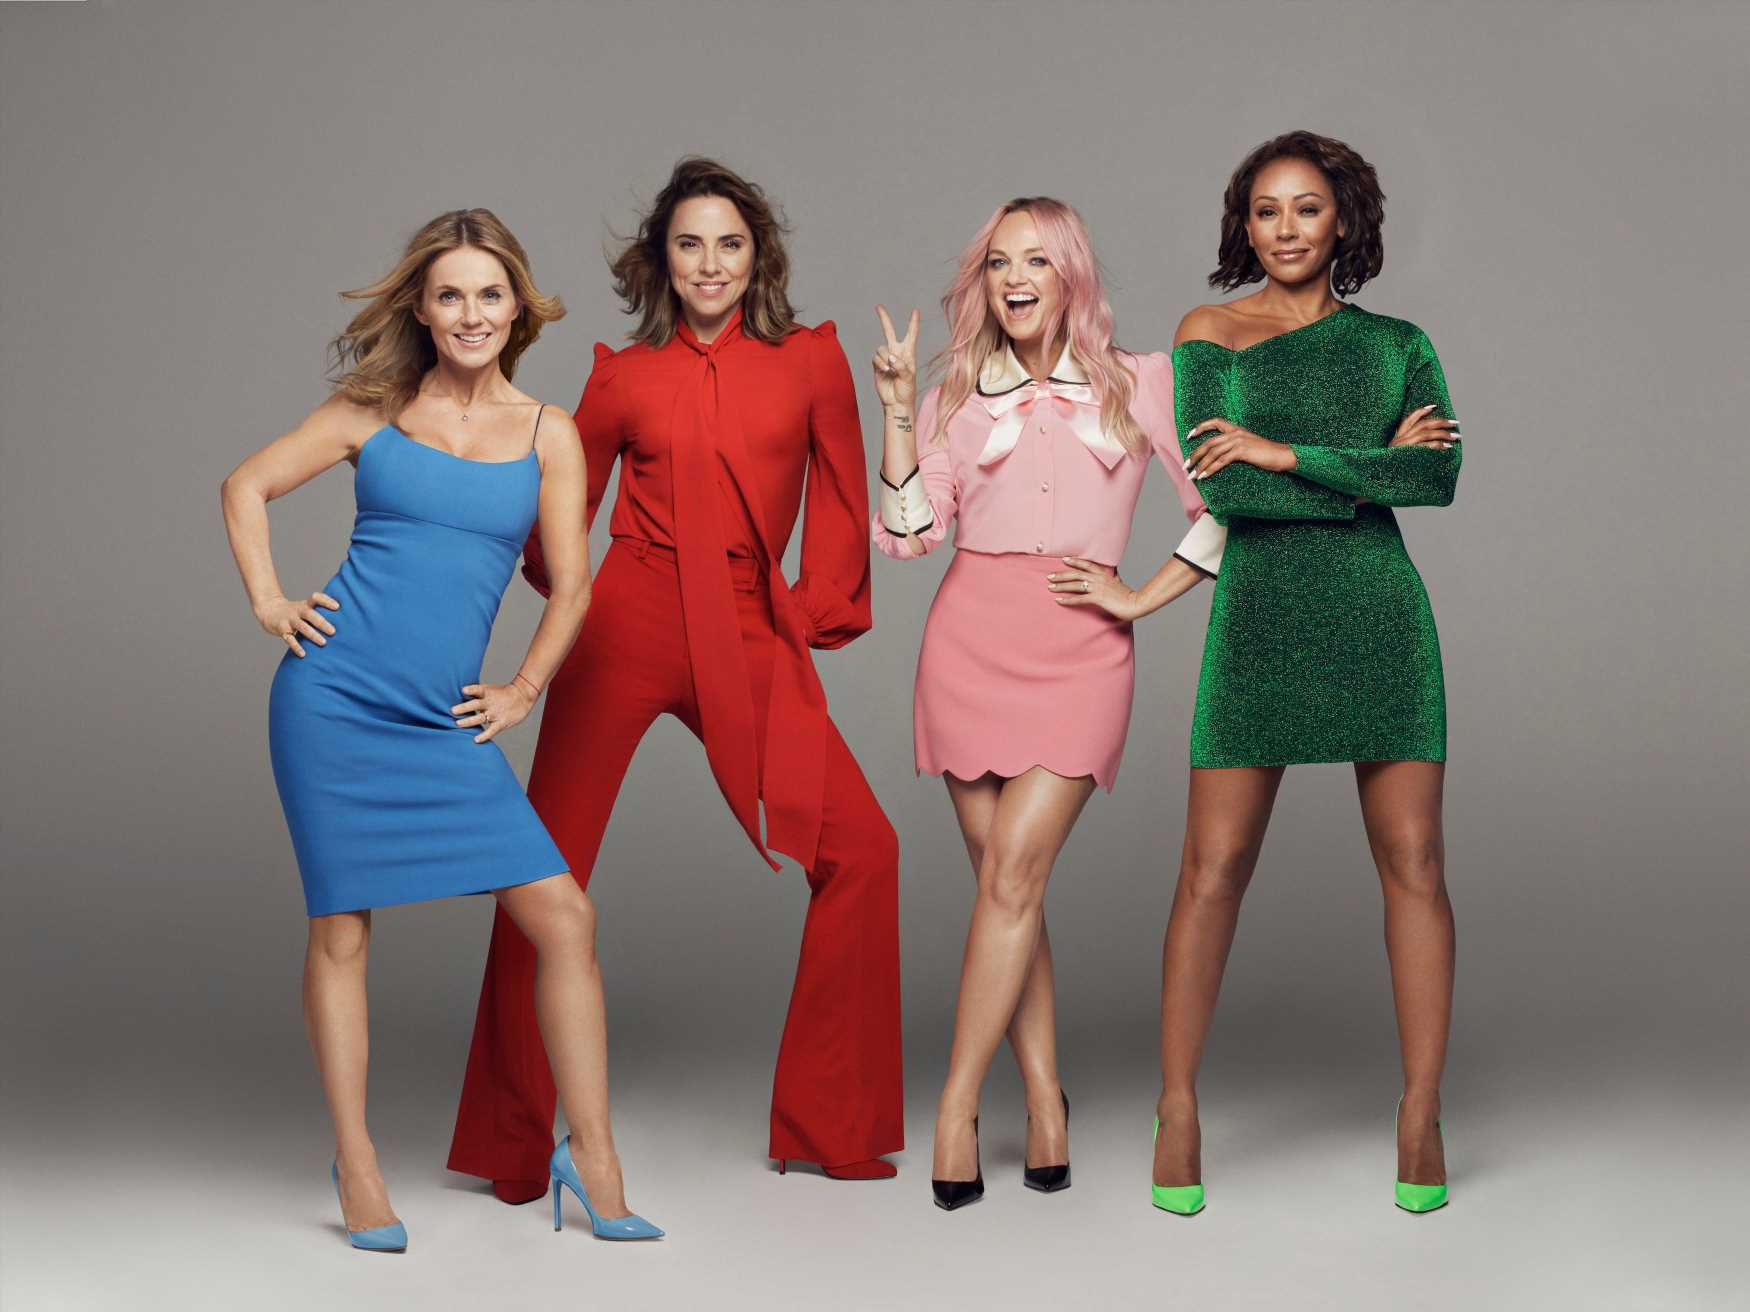 Spice Girls hit by hack after reworked version of Wannabe by Diplo and Charli XCX leaks online